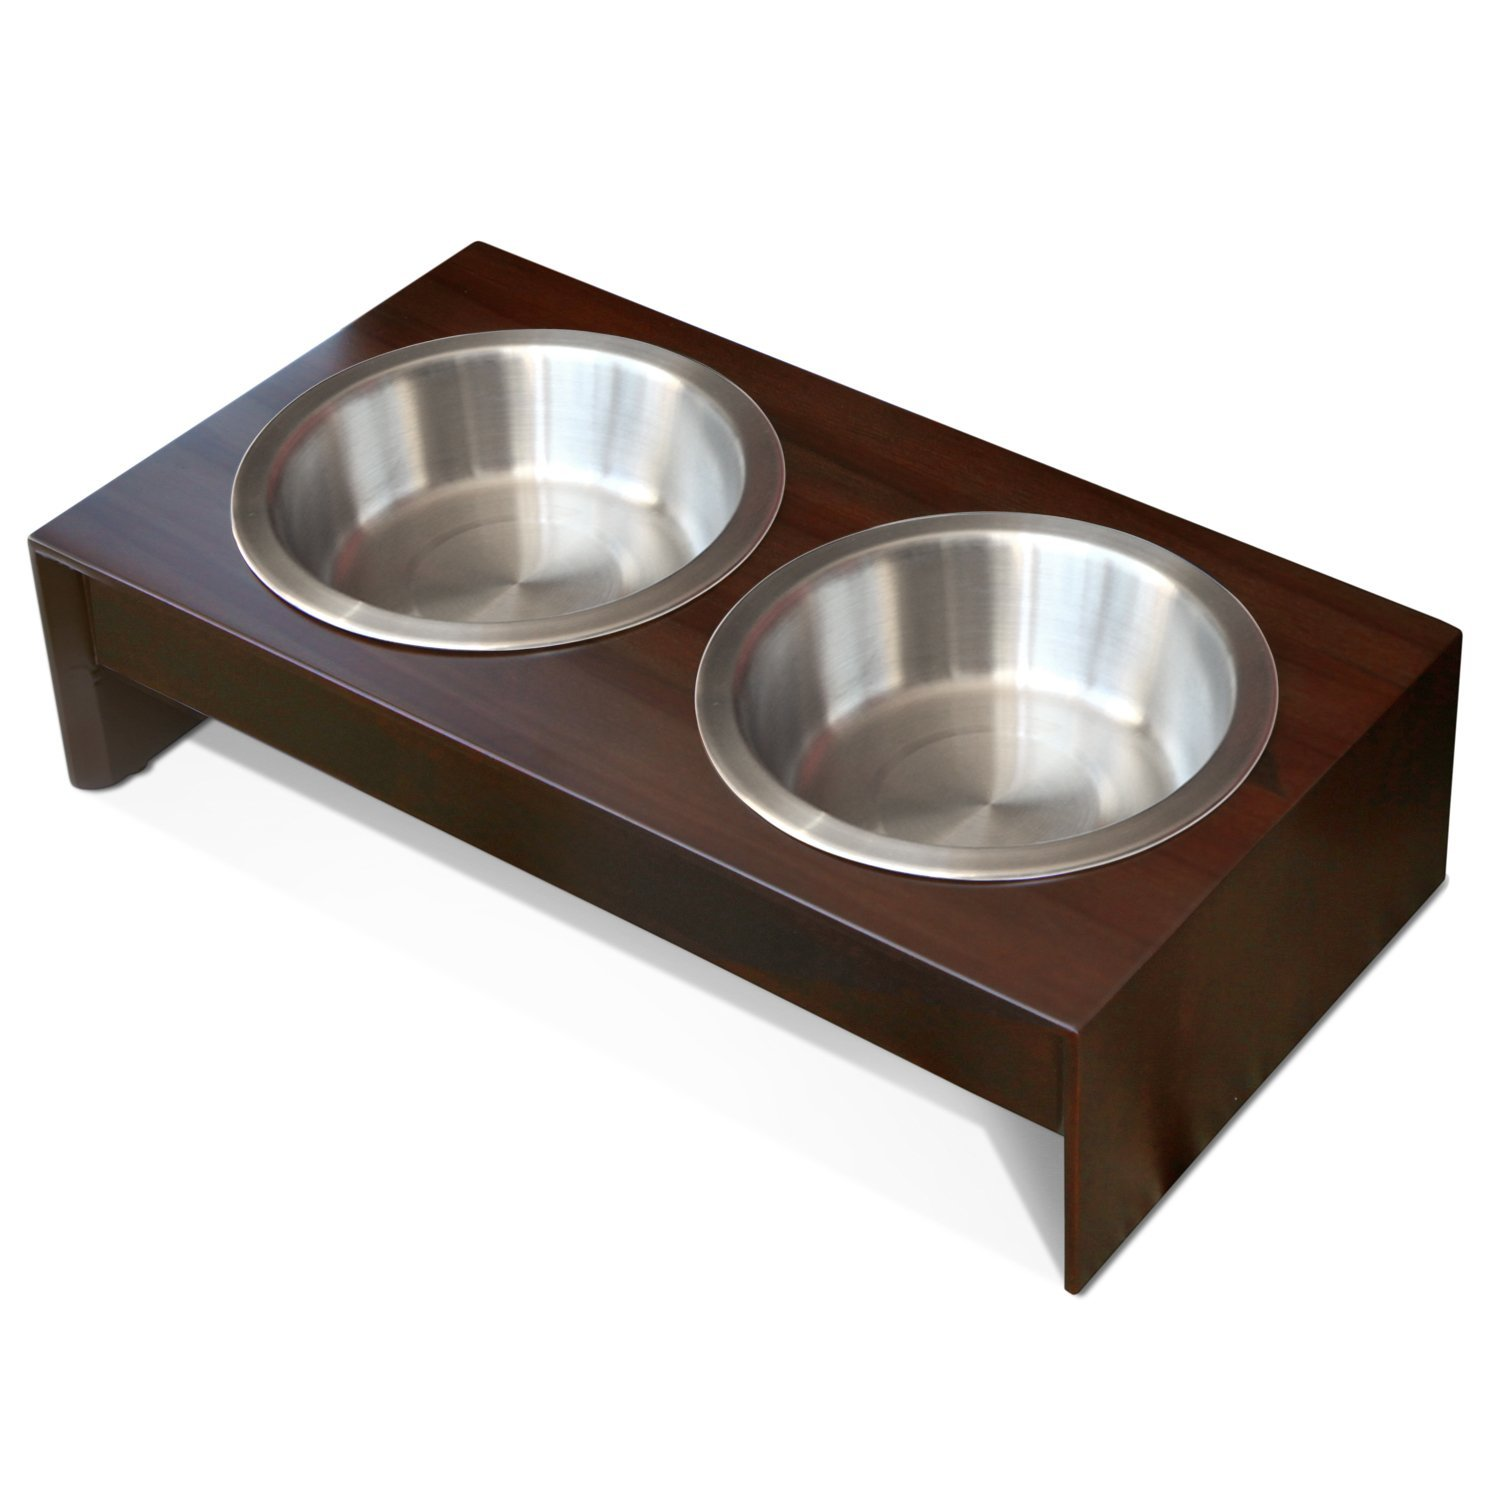 Charming Elevated Dog Bowls for Best Dog Bowl Ideas: Elevated Dog Bowls | Elevated Large Dog Bowls | Raised Cat Bowls